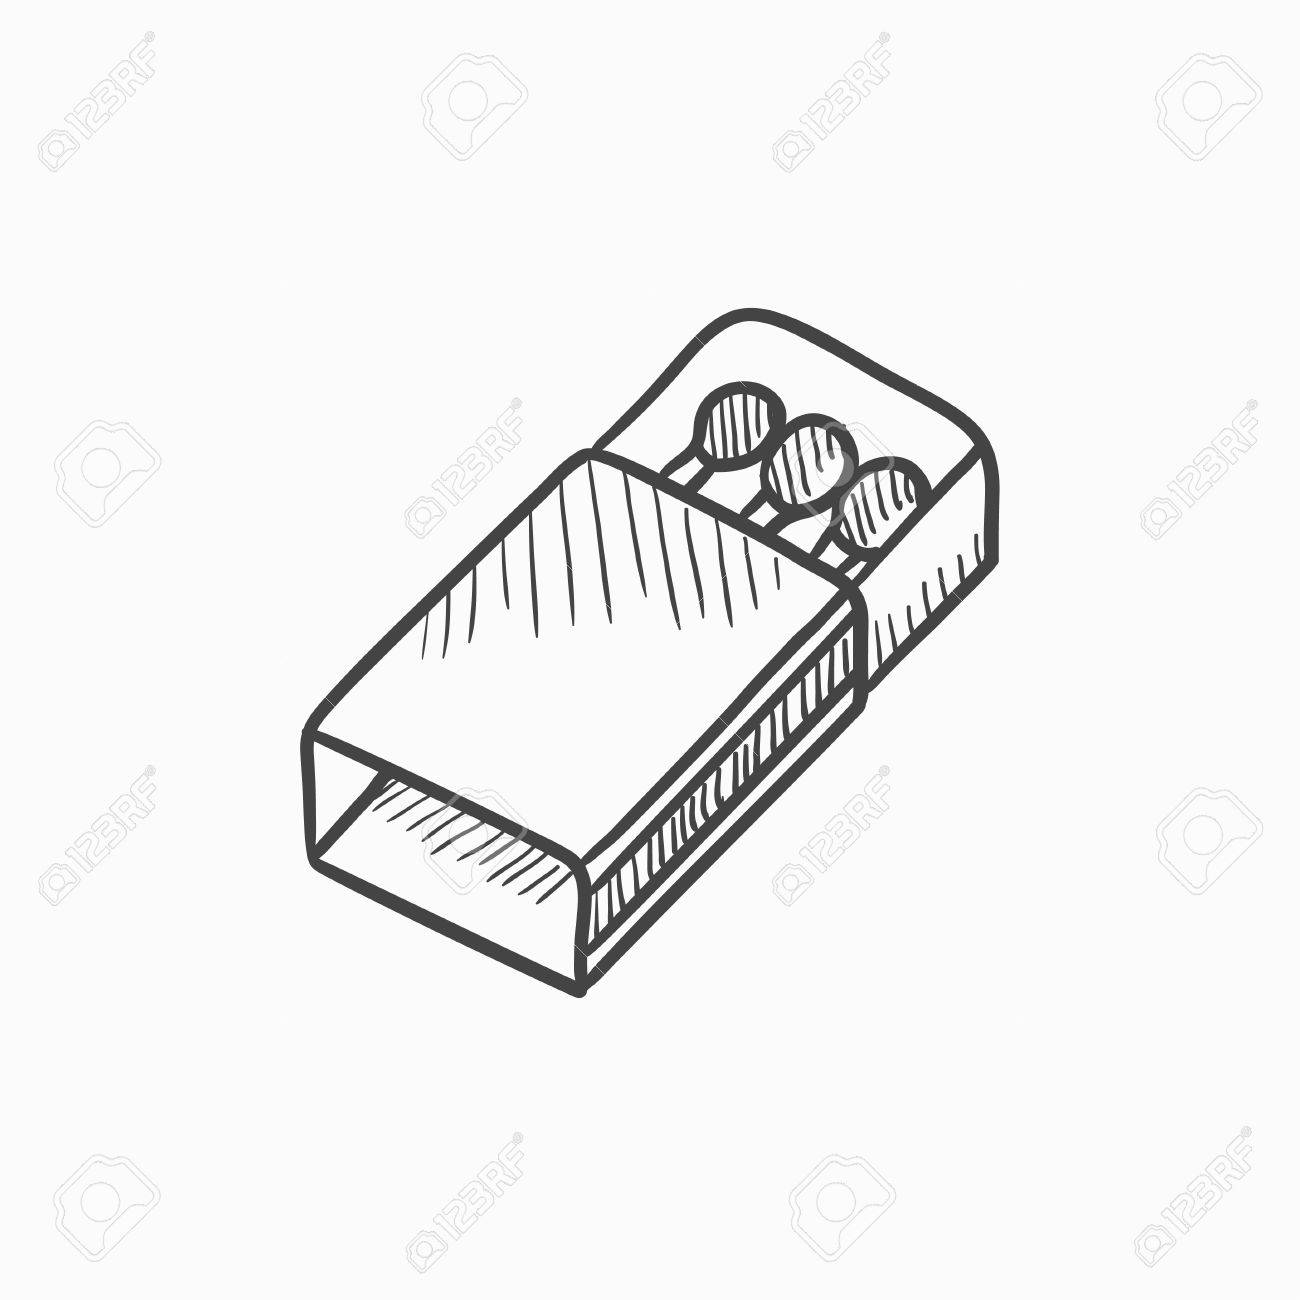 1300x1300 Matchbox Vector Sketch Icon Isolated On Background. Hand Drawn